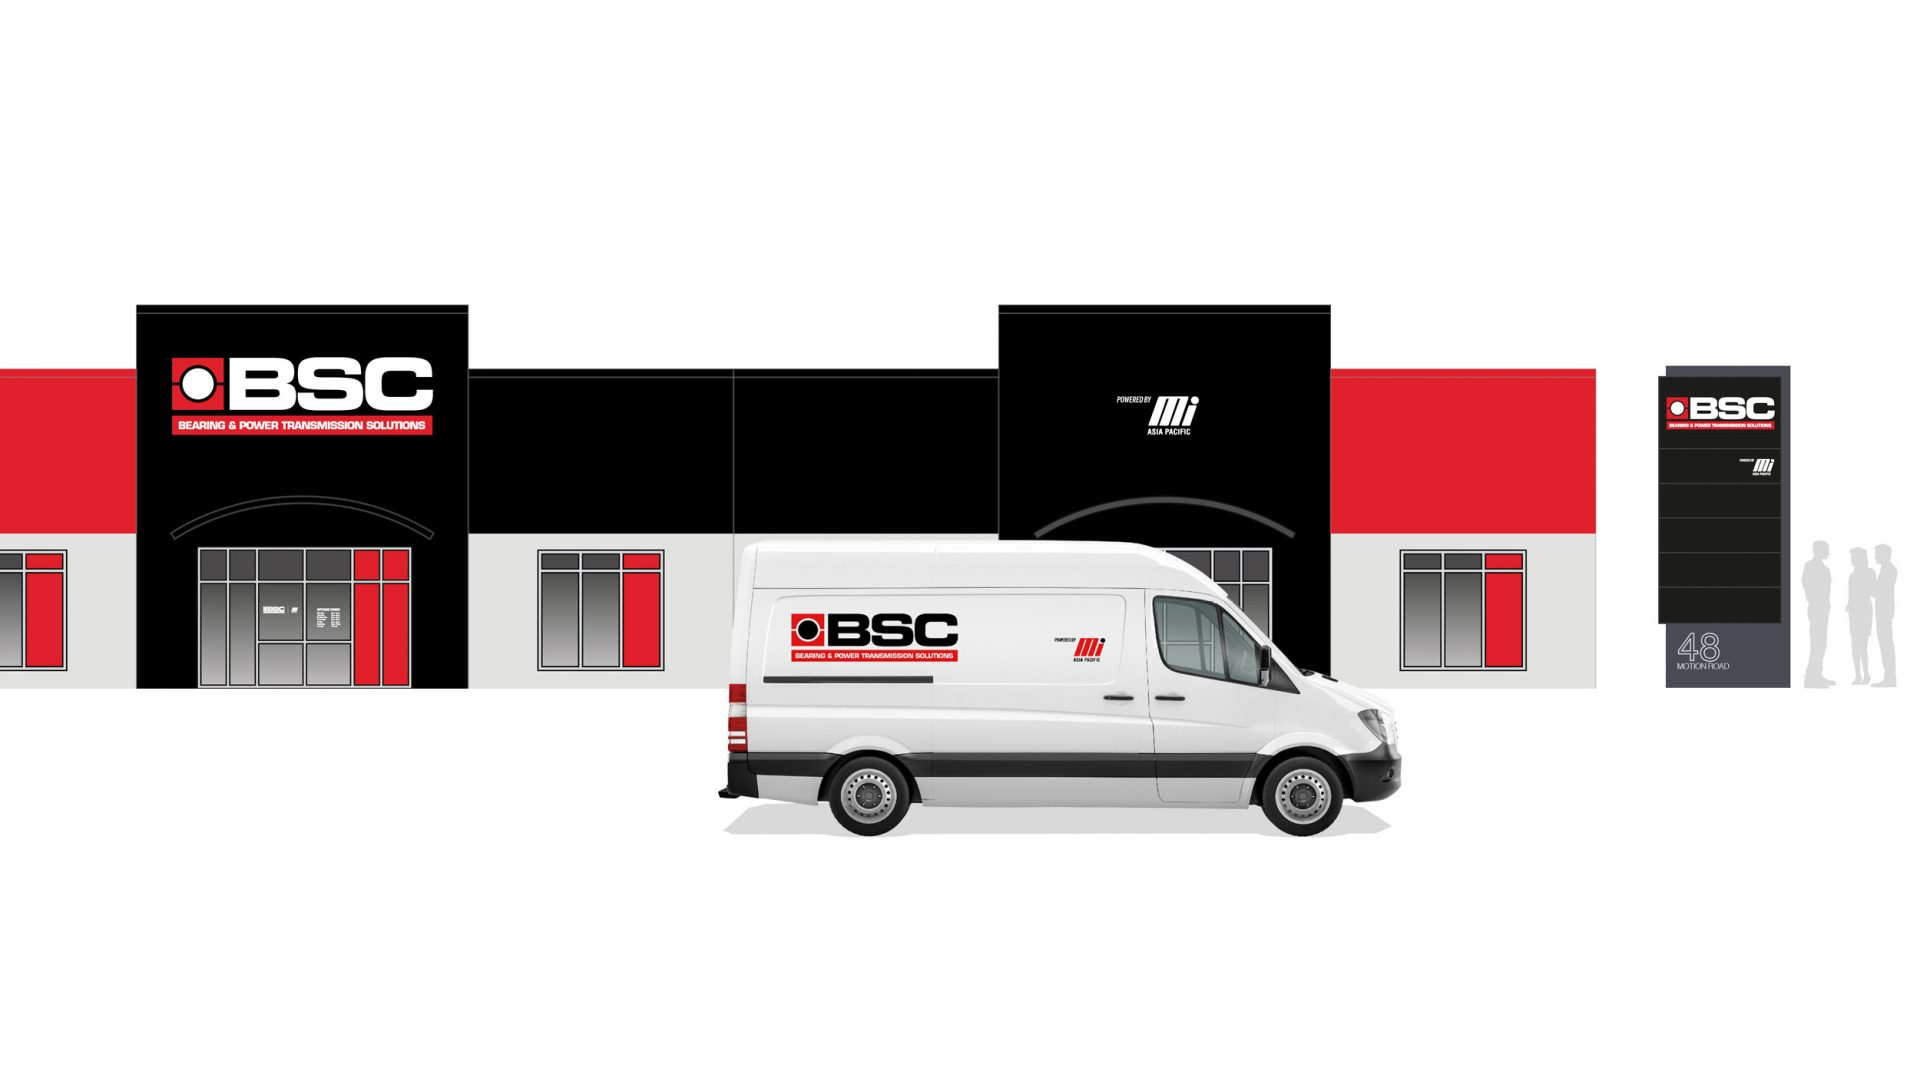 BSC exterior and vehicle signage for existing buildings